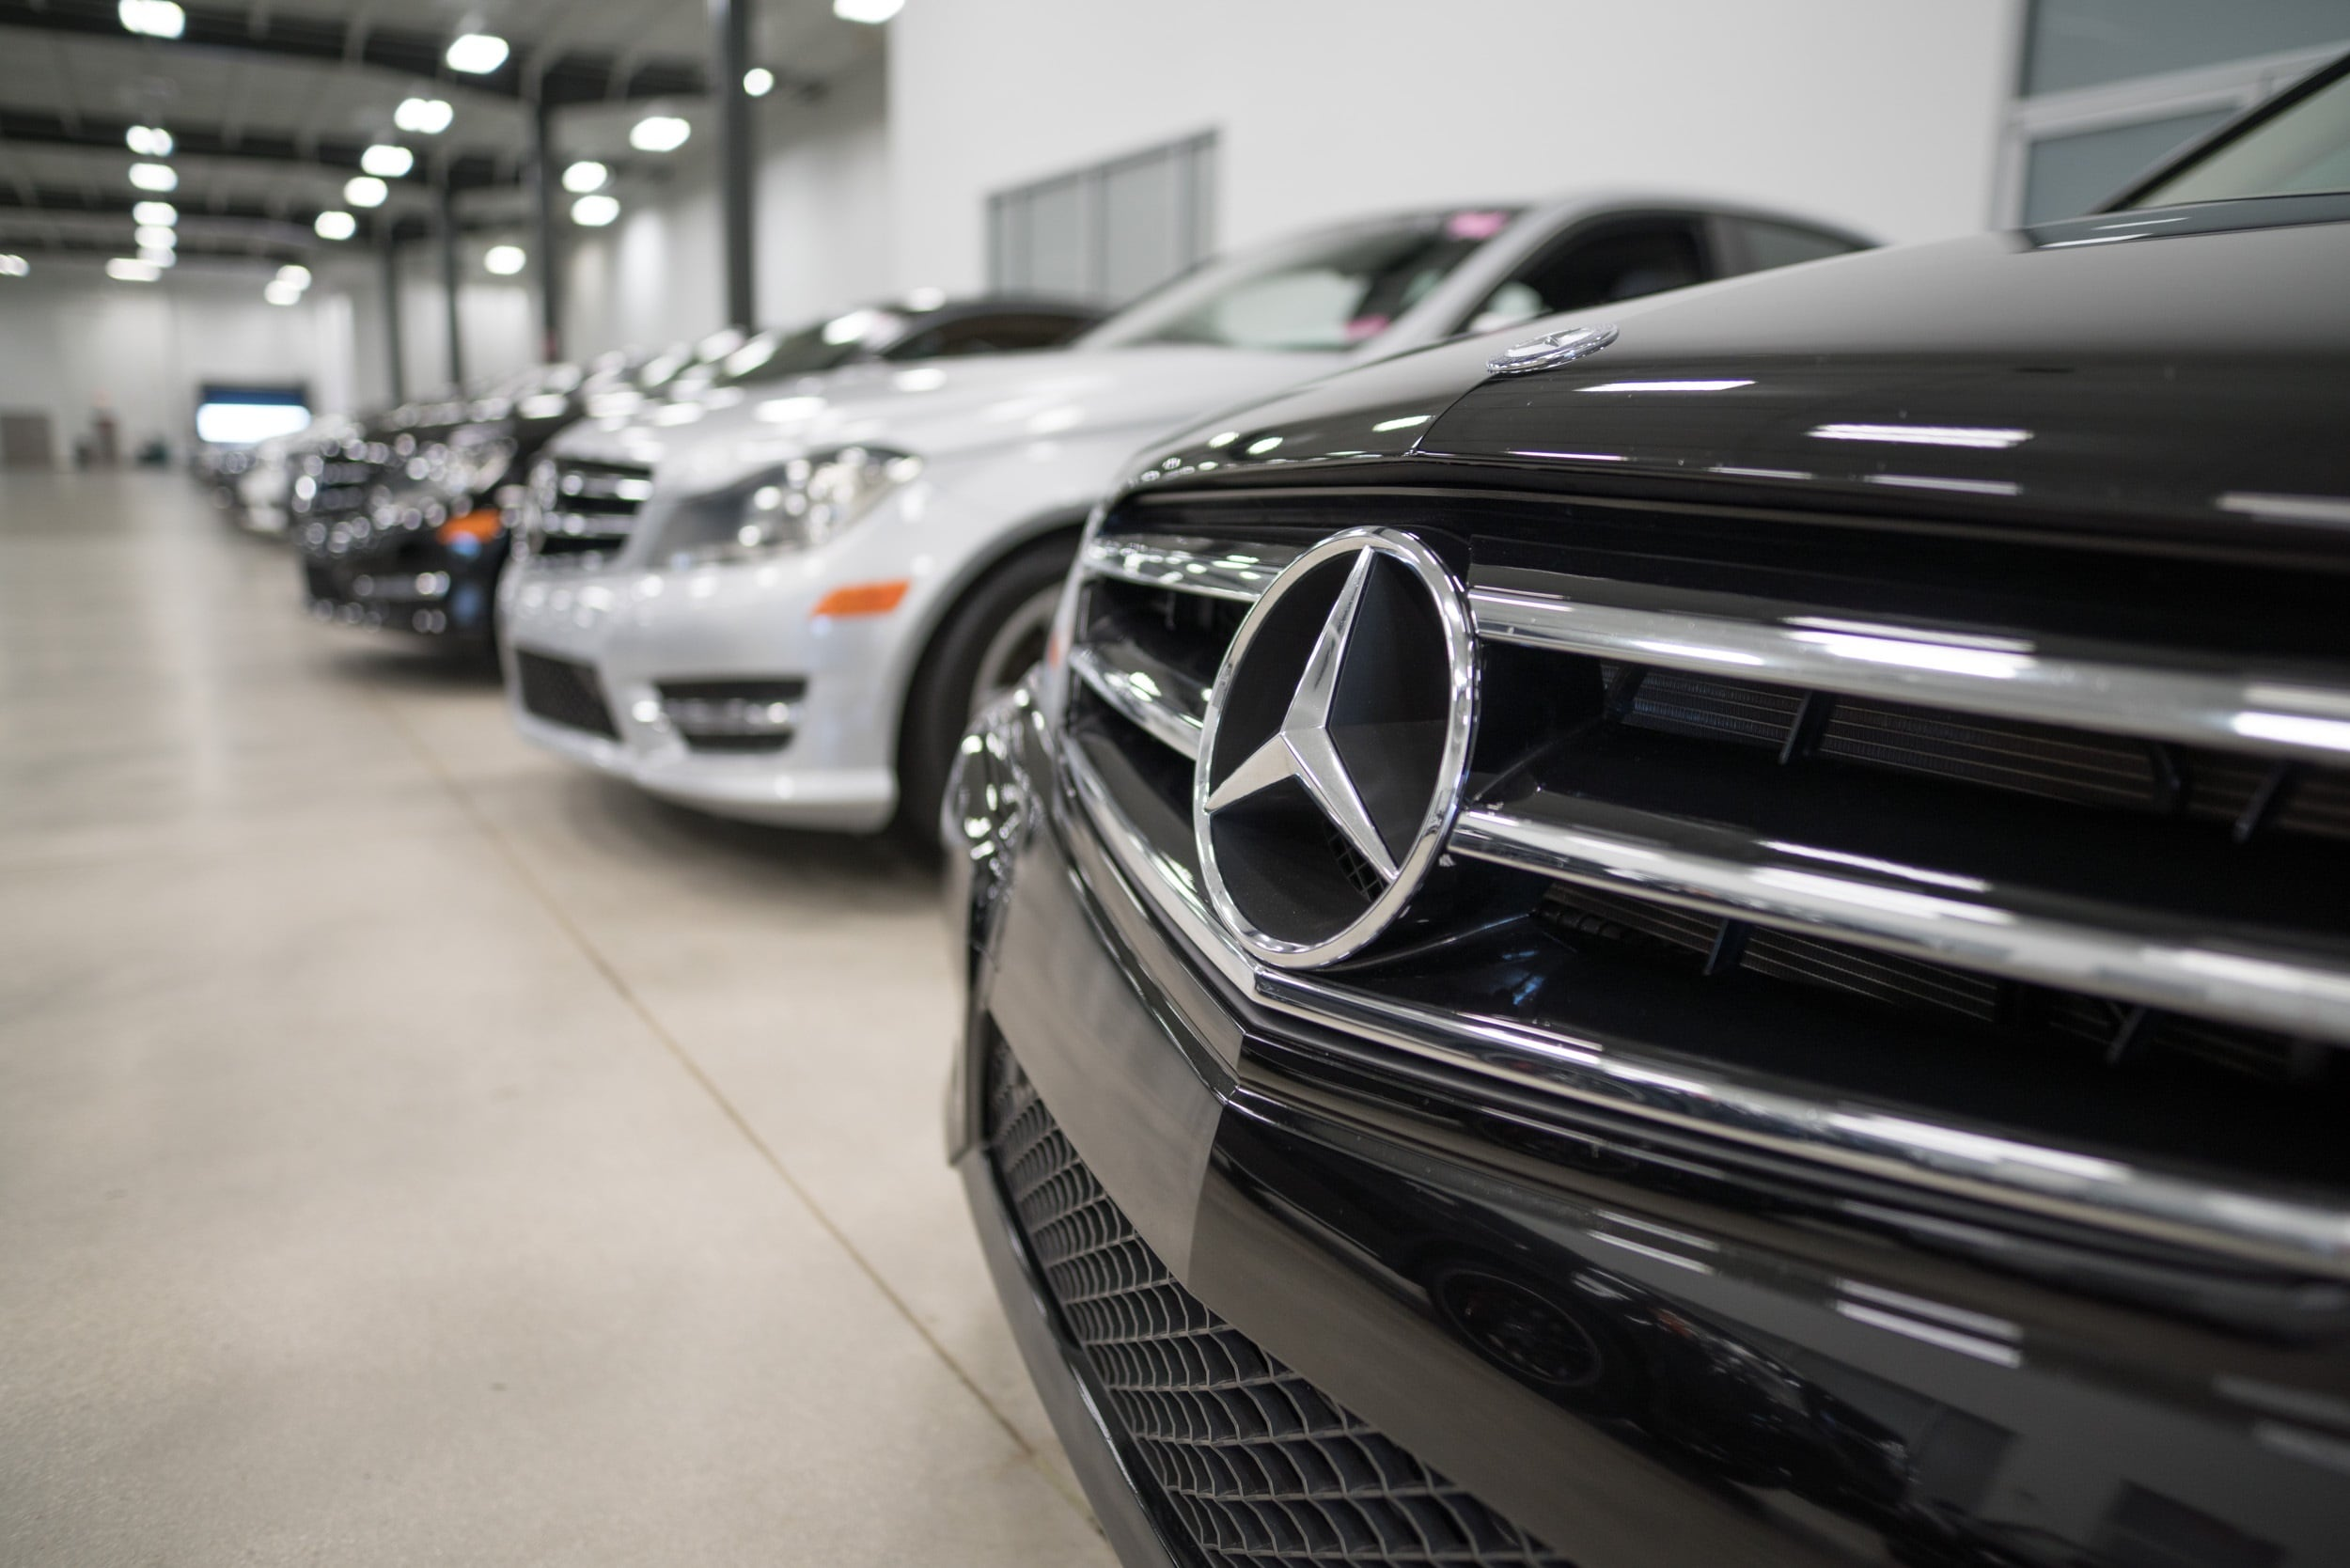 Mercedes benz of stevens creek mercedes benz dealer near for Mercedes benz service miami